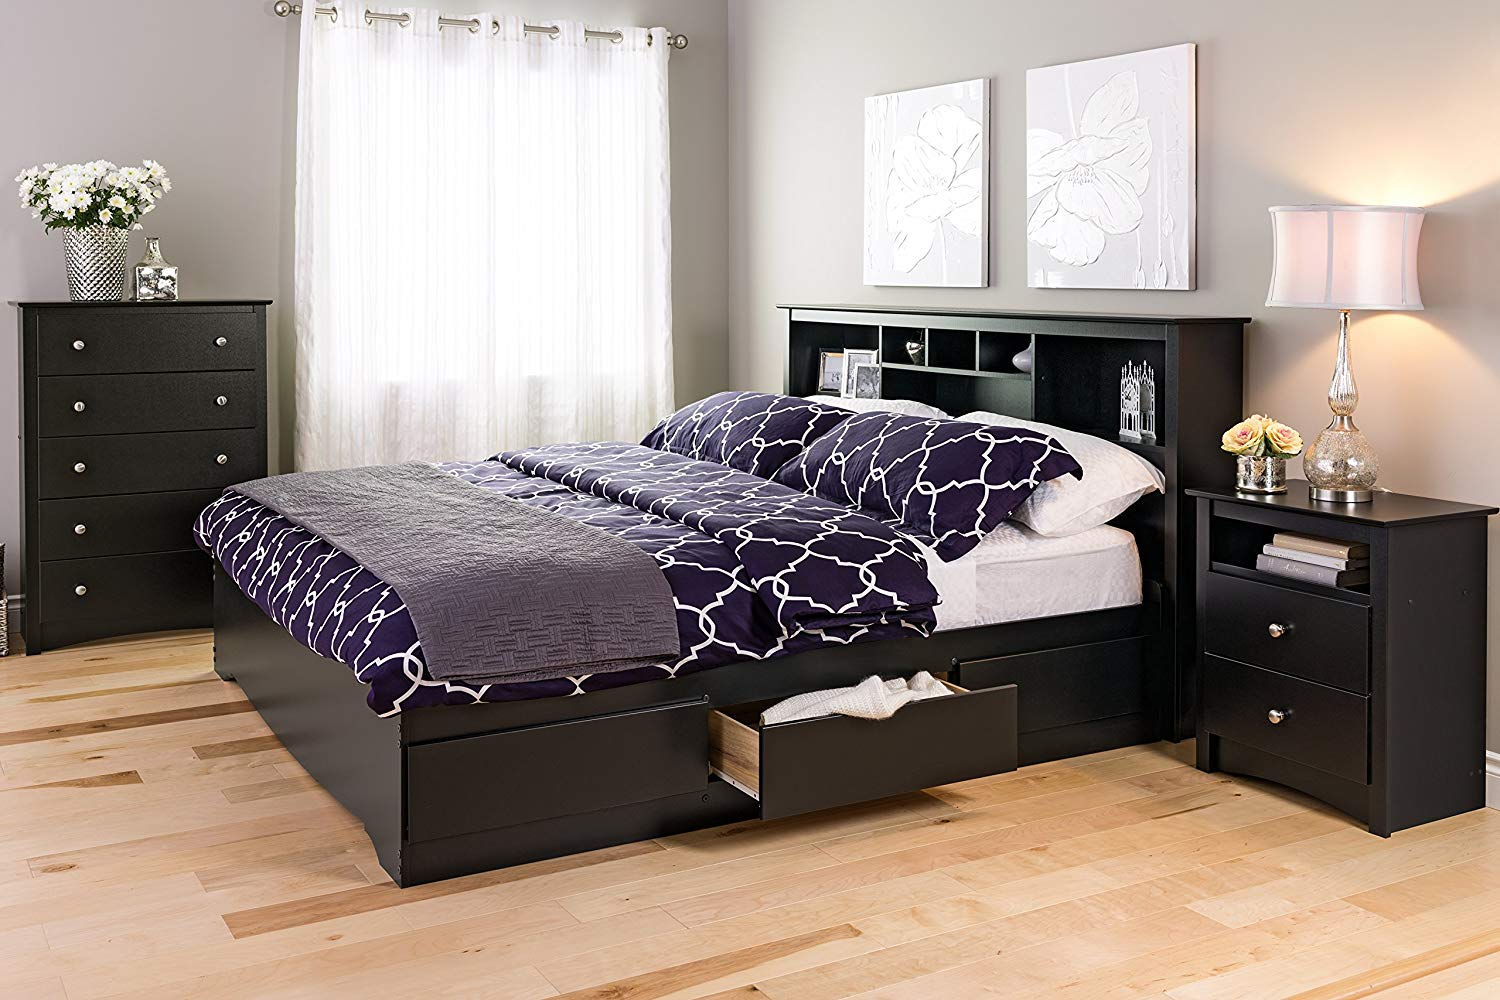 Black Sonoma 5 Drawer Chest in the bedroom look